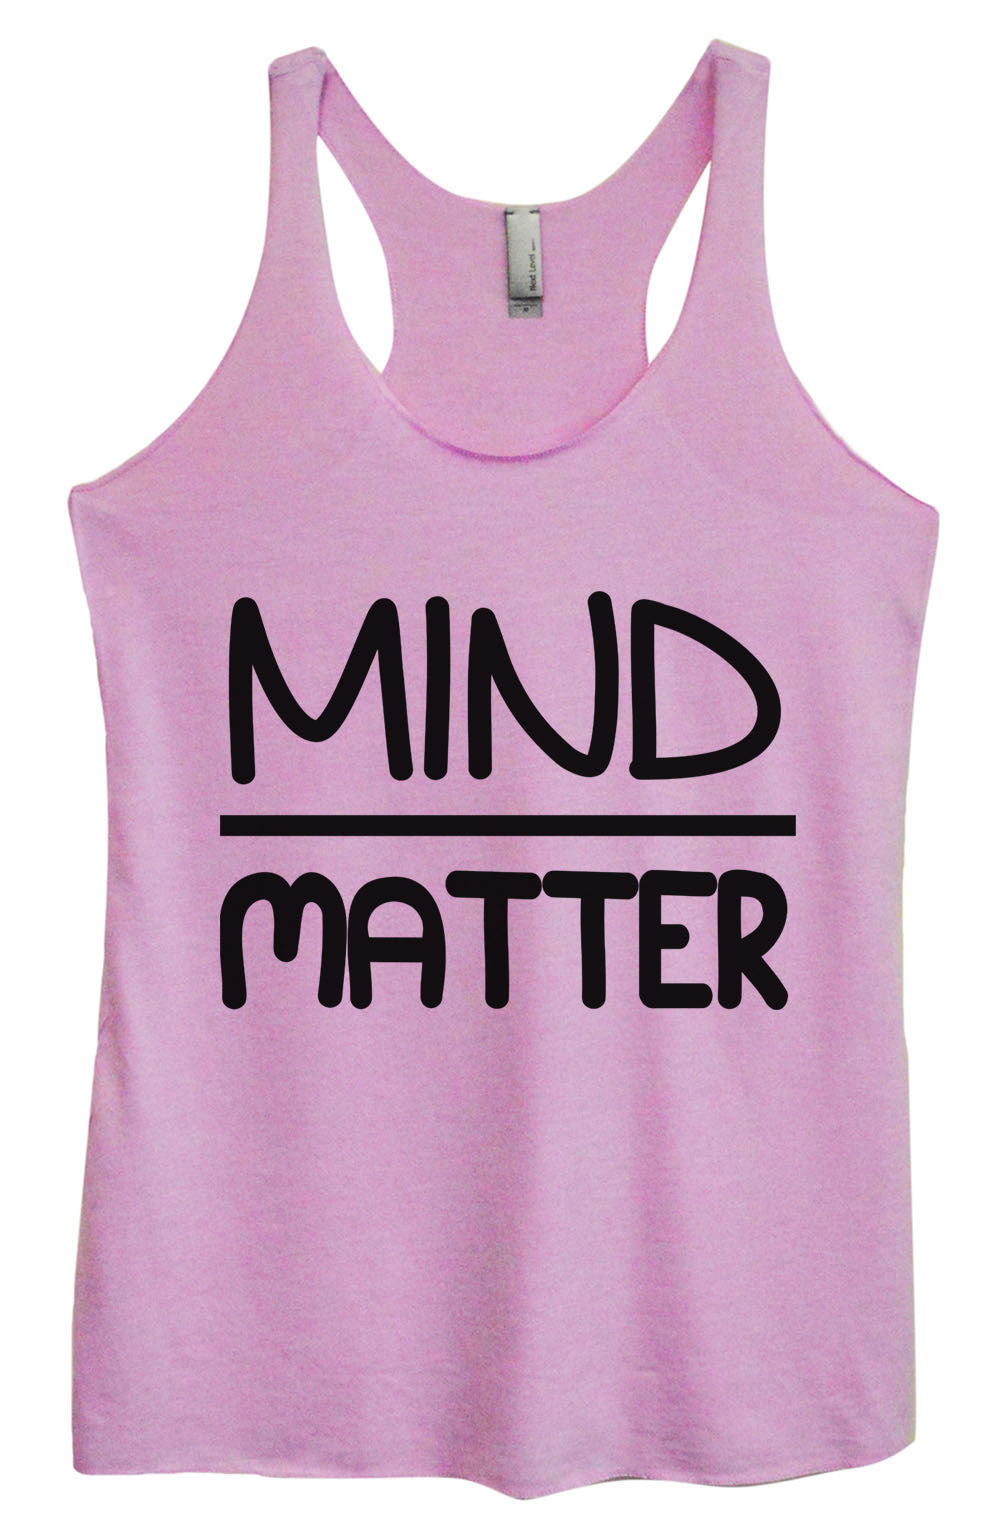 Womens Fashion Triblend Tank Top - Mind Matter - Tri-555 - Funny Shirts Tank Tops Burnouts and Triblends  - 4